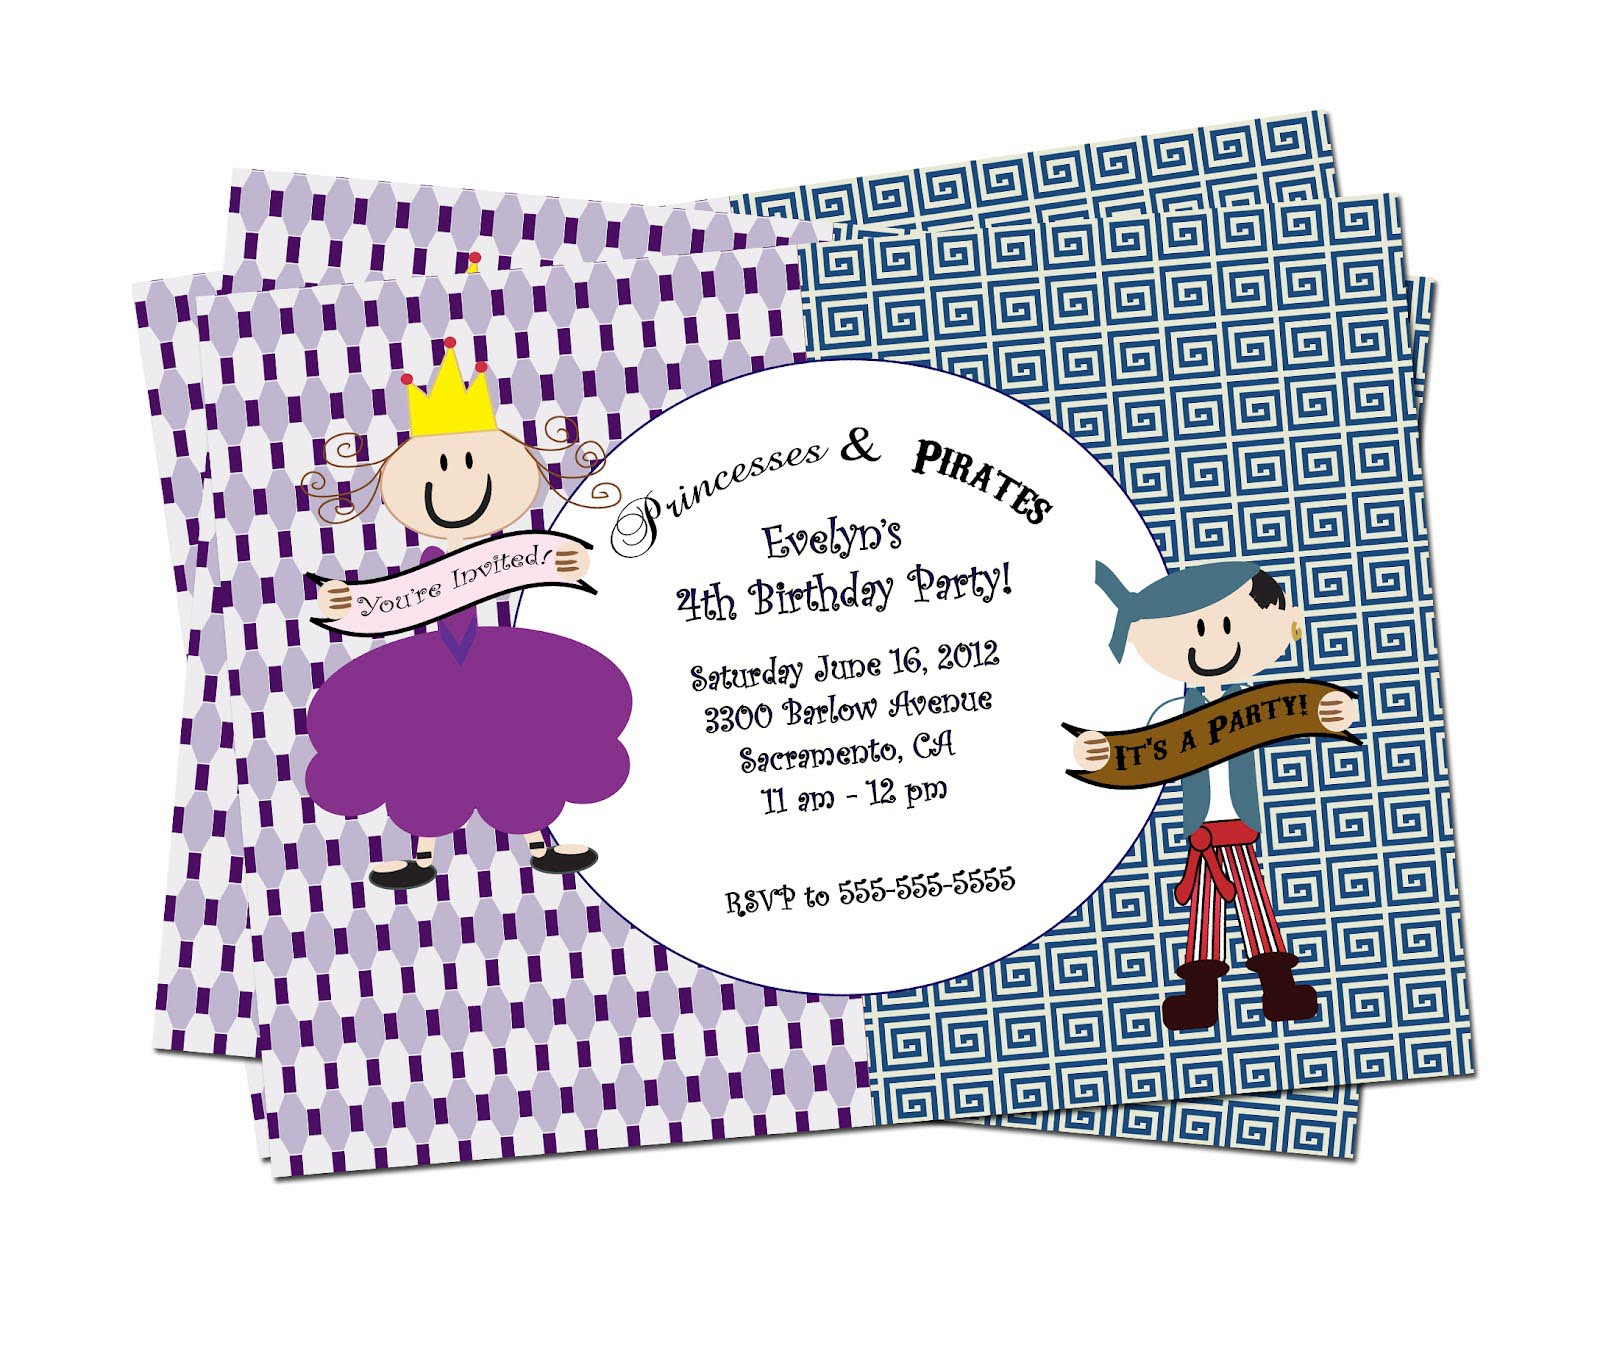 Princess Pirate Party Invitations – Princess and Pirates Party Invitations